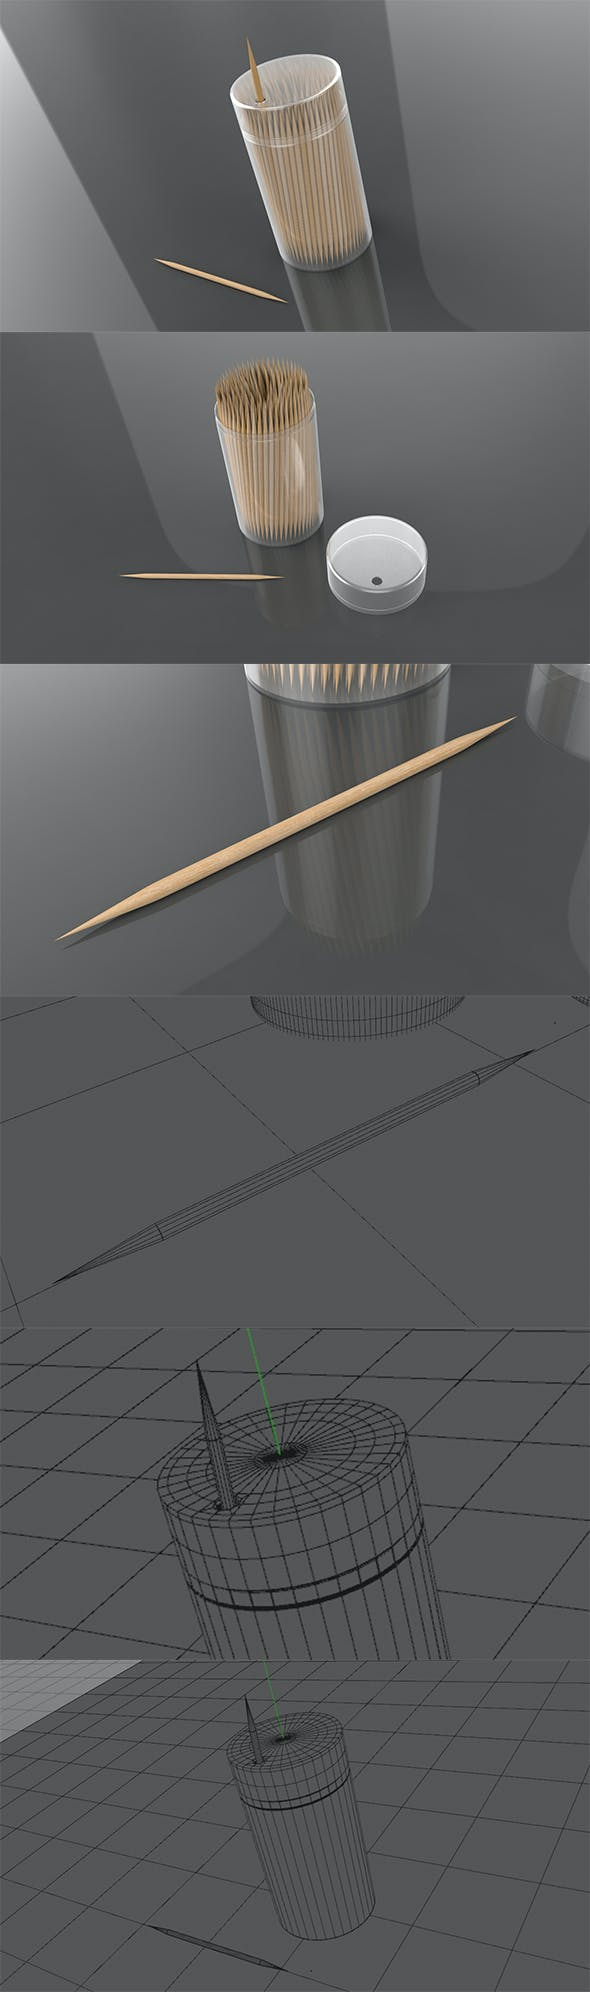 3D Double Pointed Toothpicks - 3DOcean Item for Sale